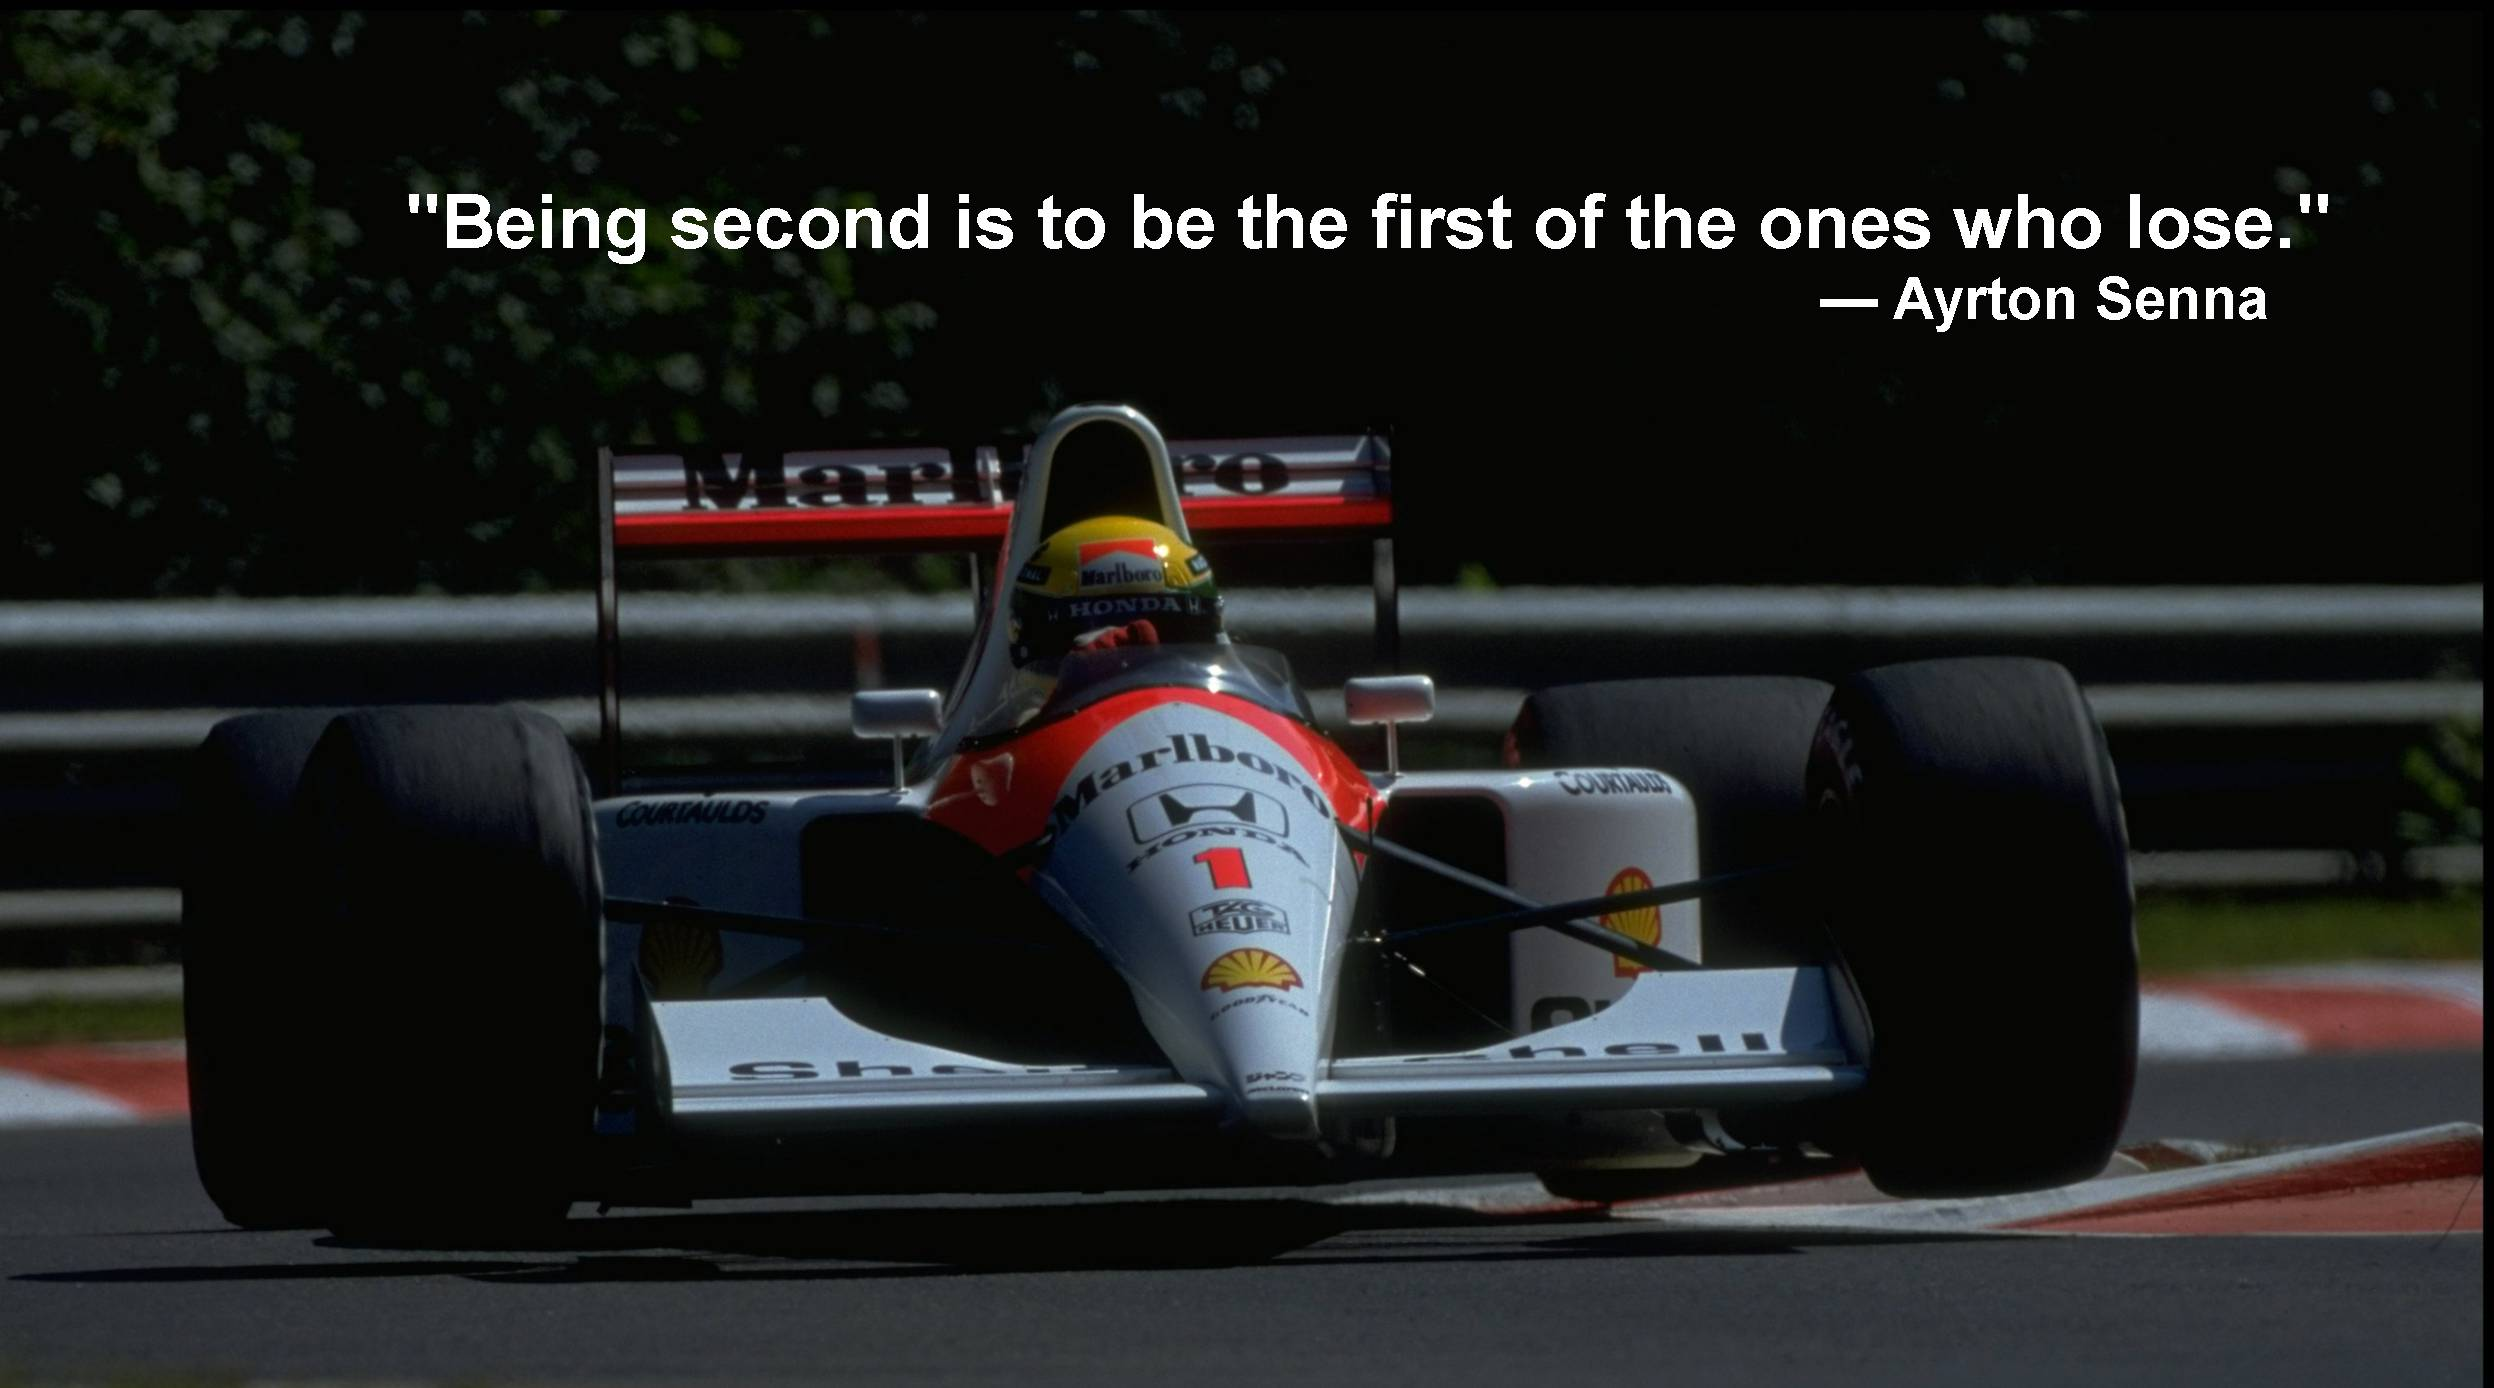 Ayrton Senna's quote #2